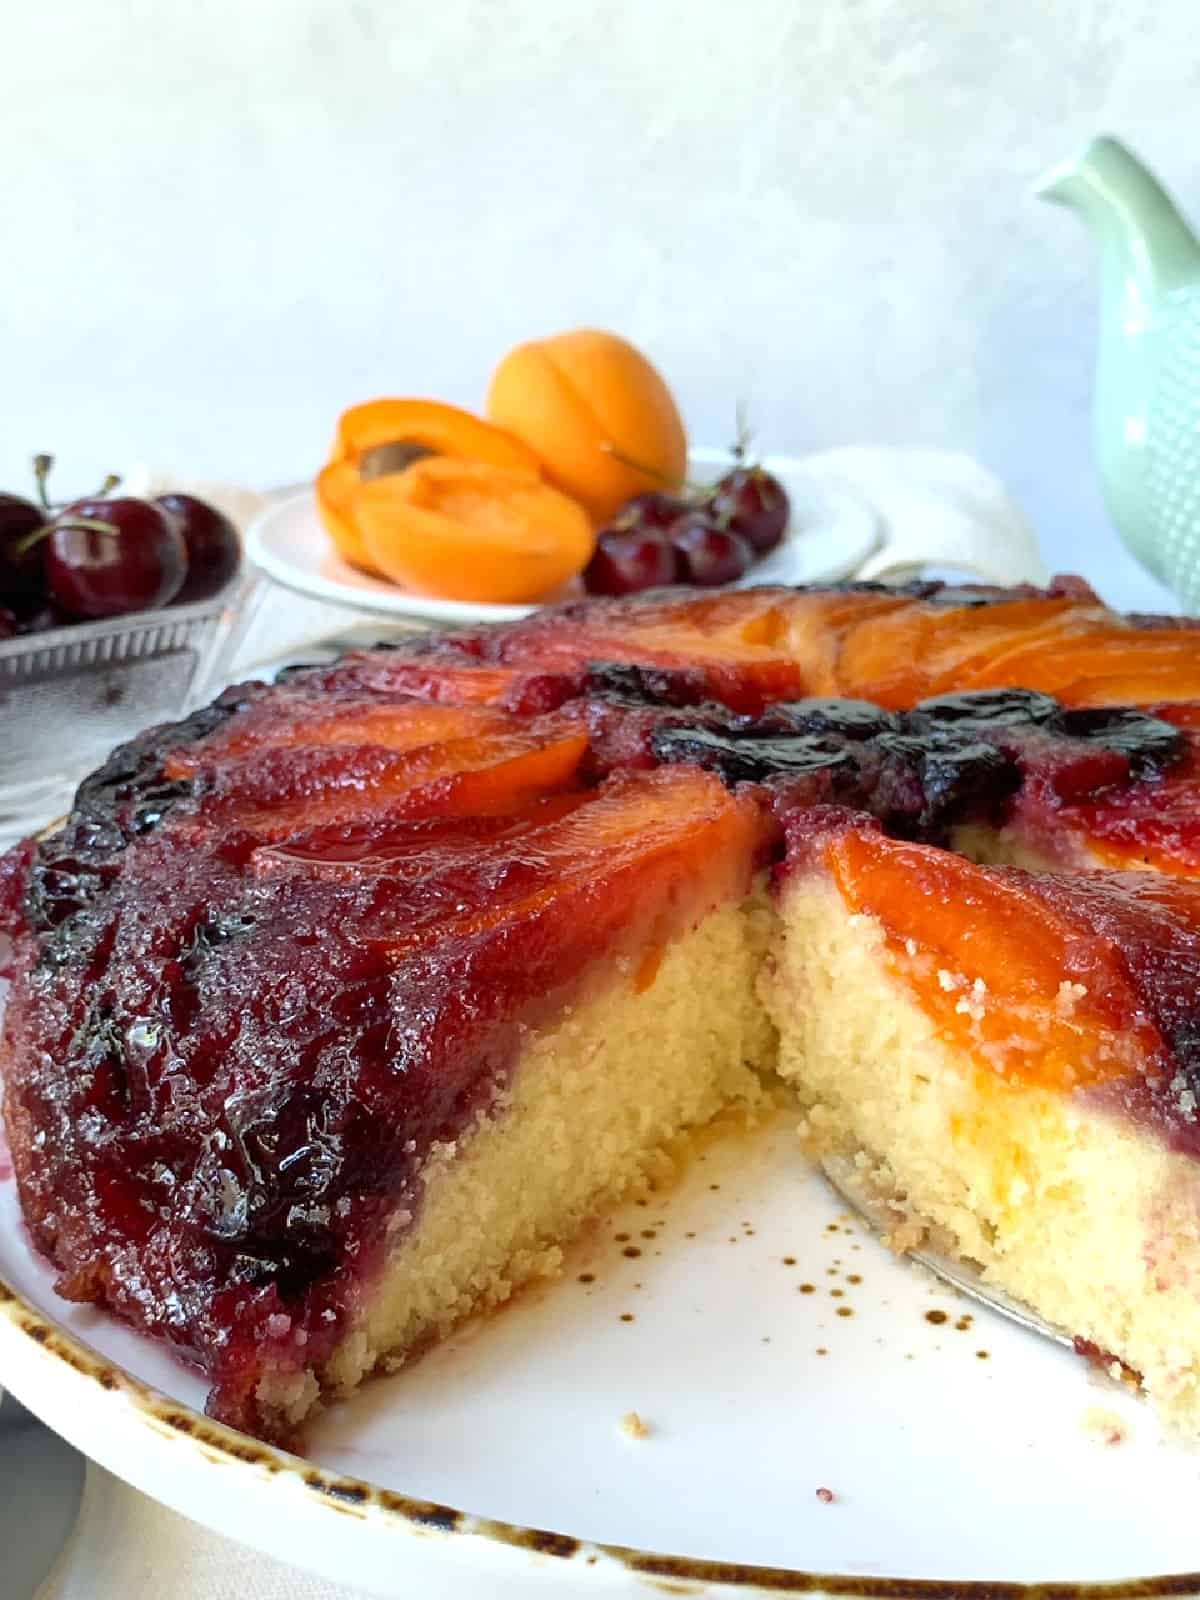 A baked apricot cherry upside down cake on a white tray.